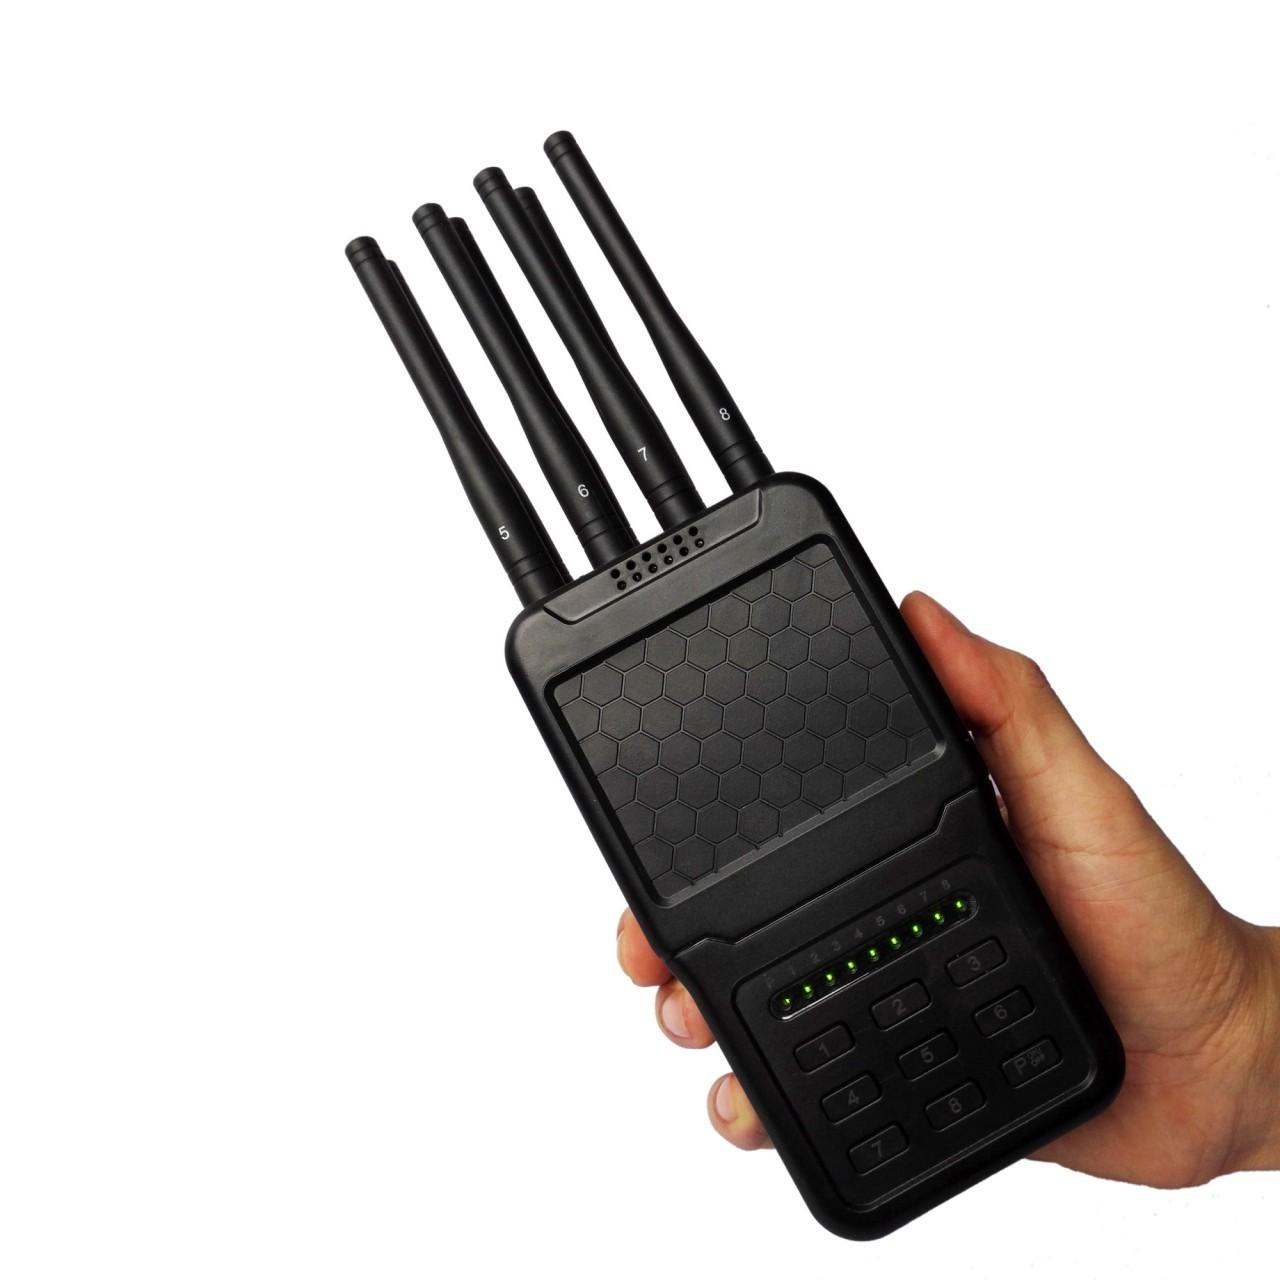 Wholesale Selectable Keys Portable Cell Phone Signal Jammer 3G 4G WiFi GPS Blocker 8 Bands from china suppliers